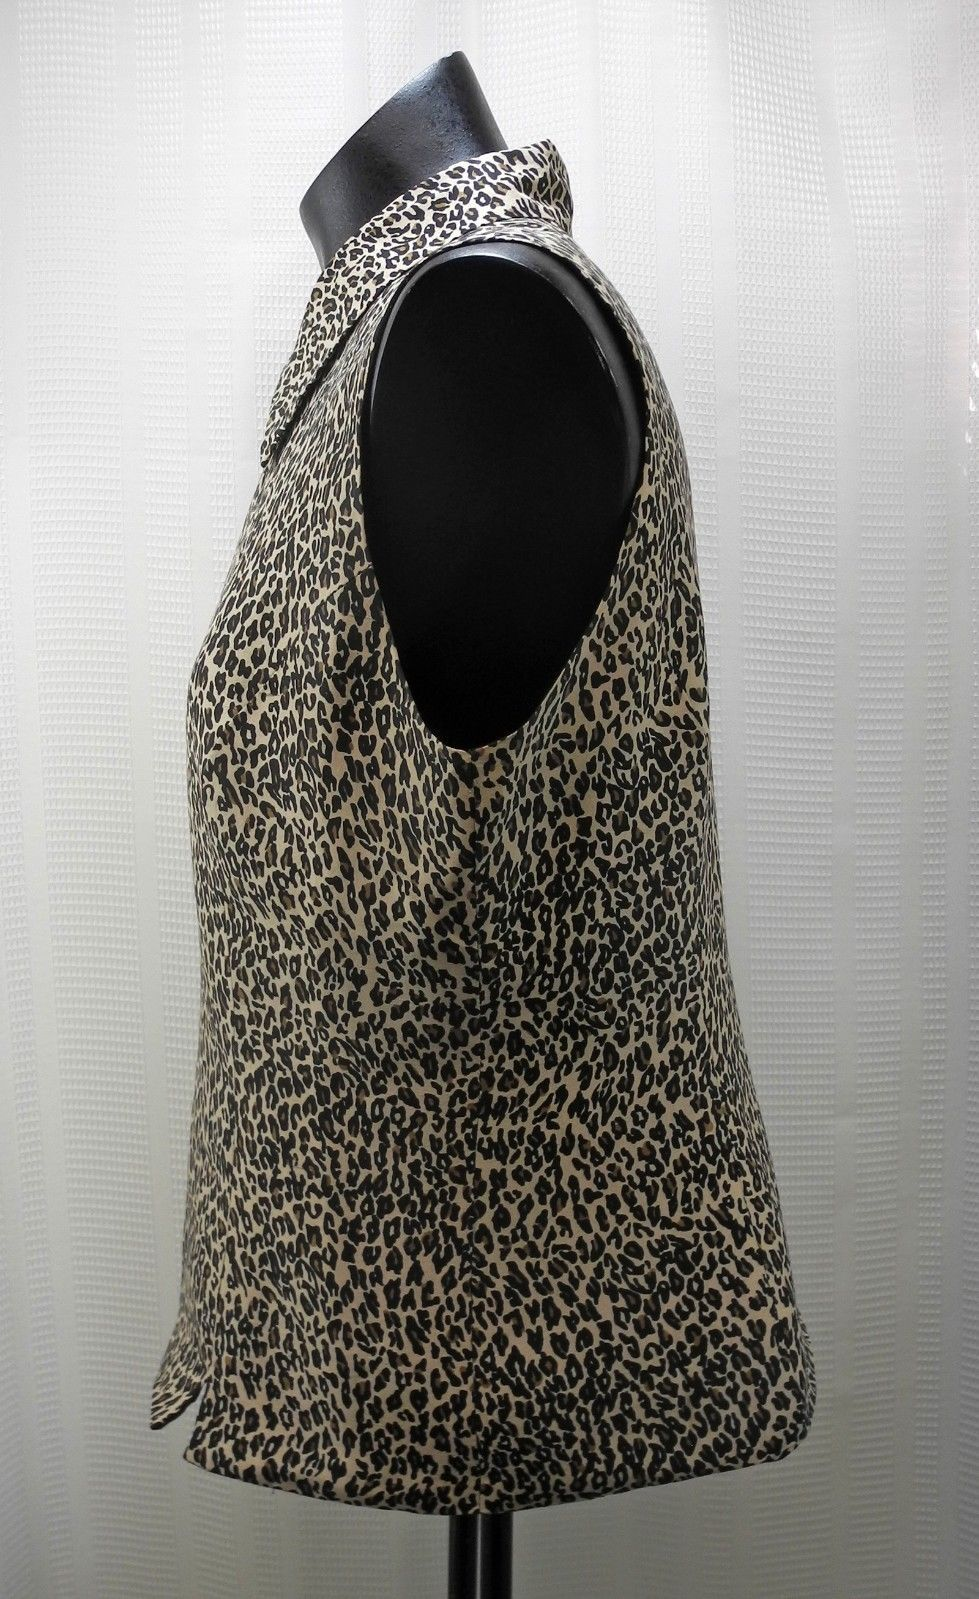 Silkland Leopard Print Lined Full Zip-Front Vest with Collar - Women's Size M